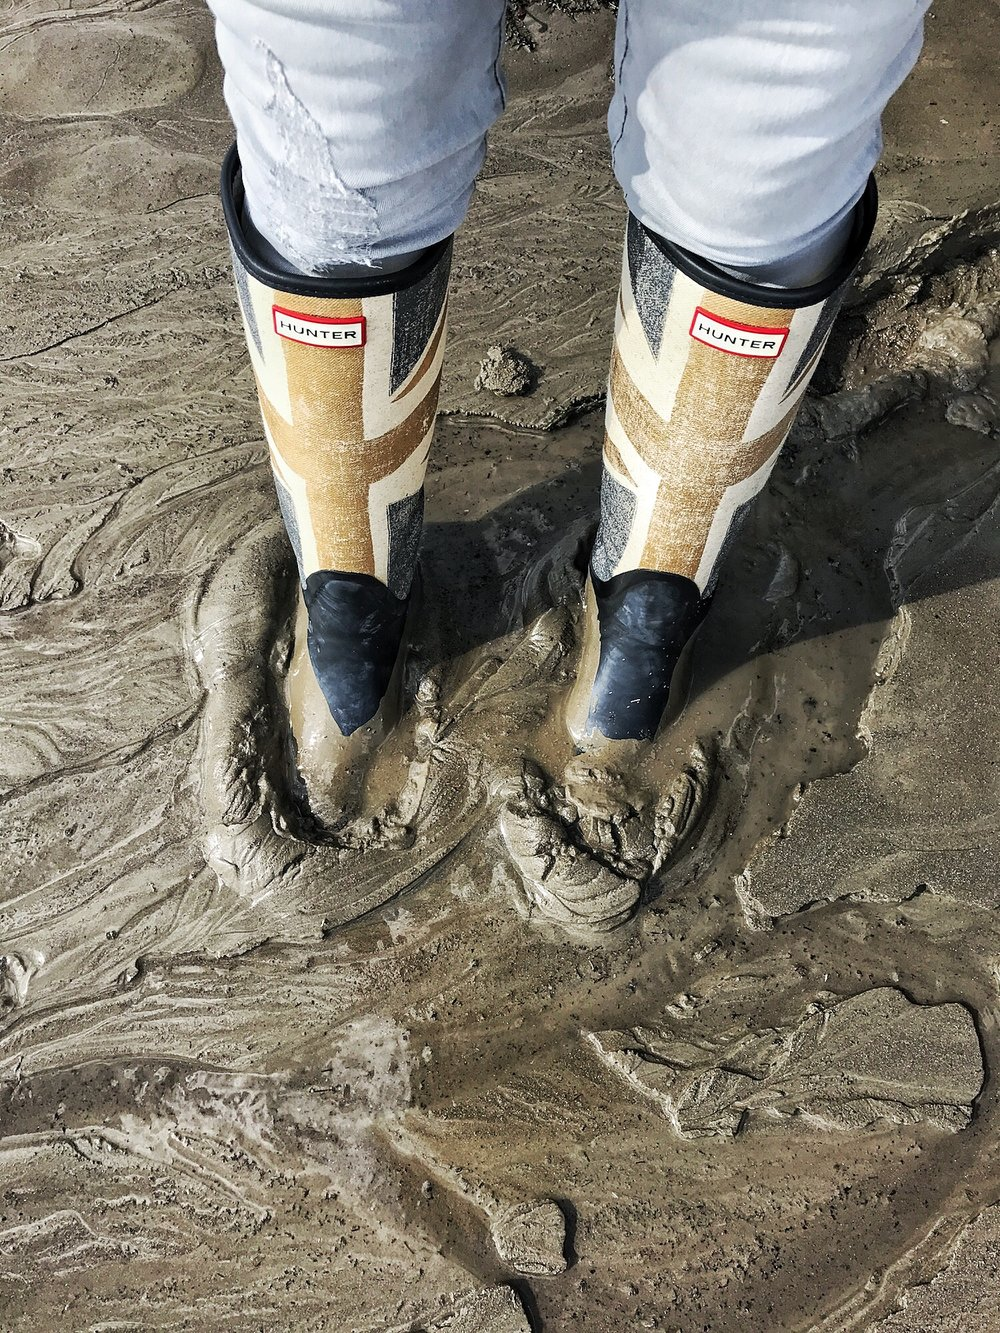 Union Jack Boots in The Mud. A Broad In London Mudlarking On The Thames